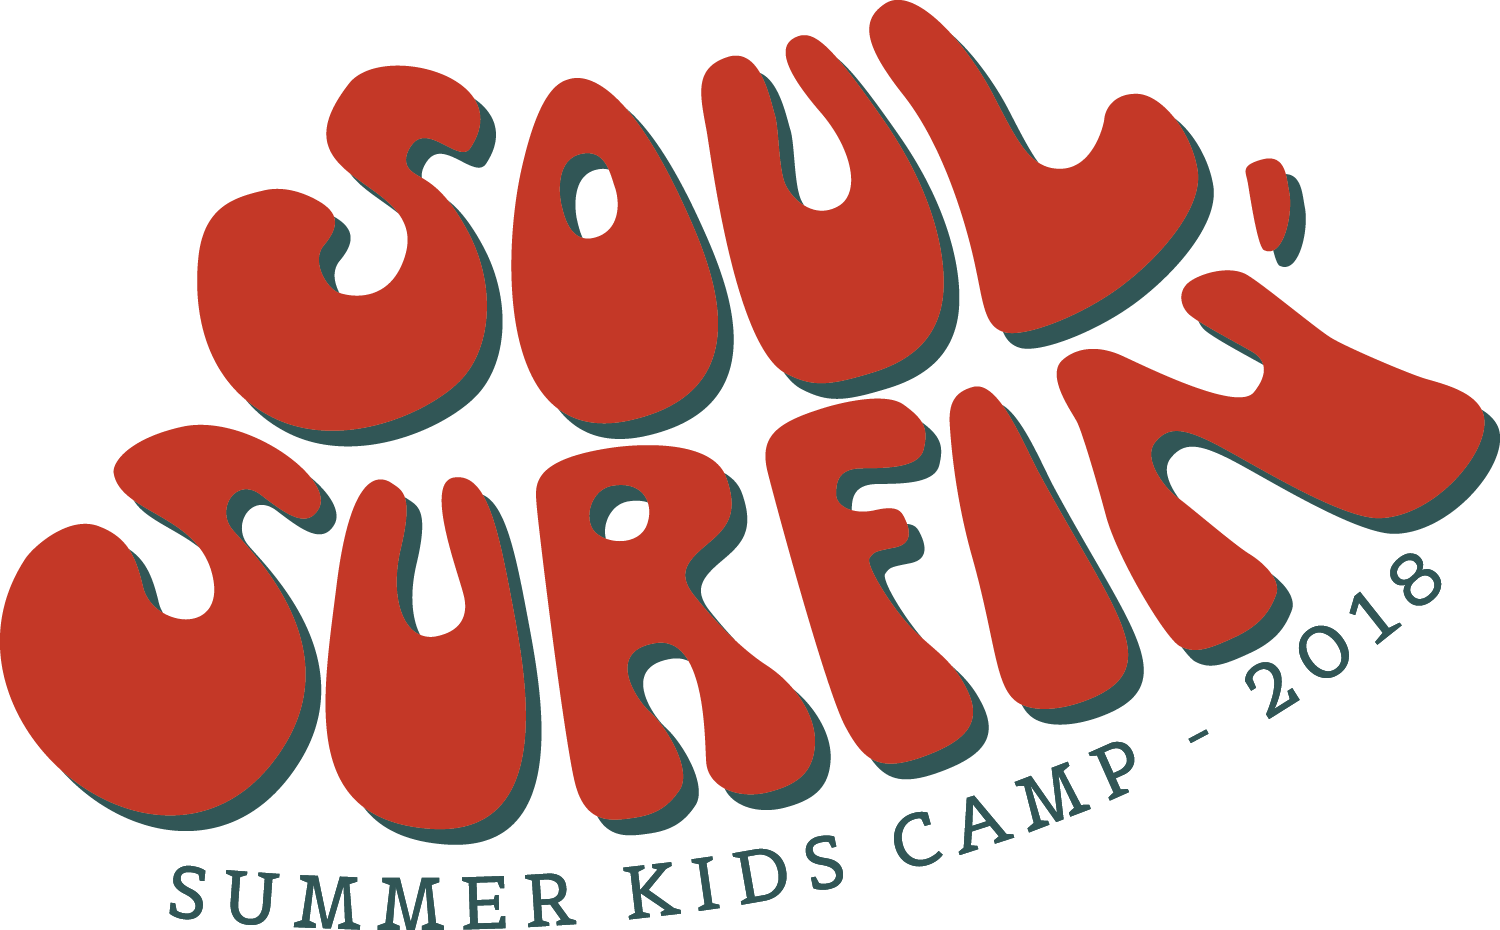 Soul Surfin Summer Kids Camp at Tonto Rim